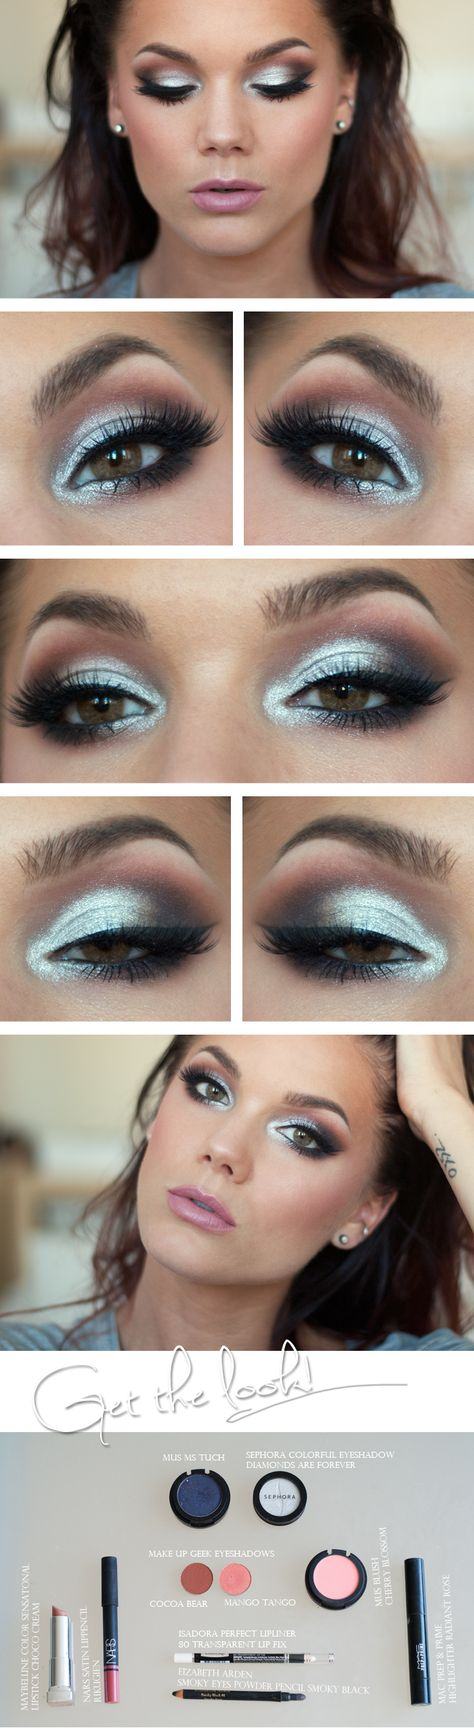 best images about make up genius on pinterest too faced